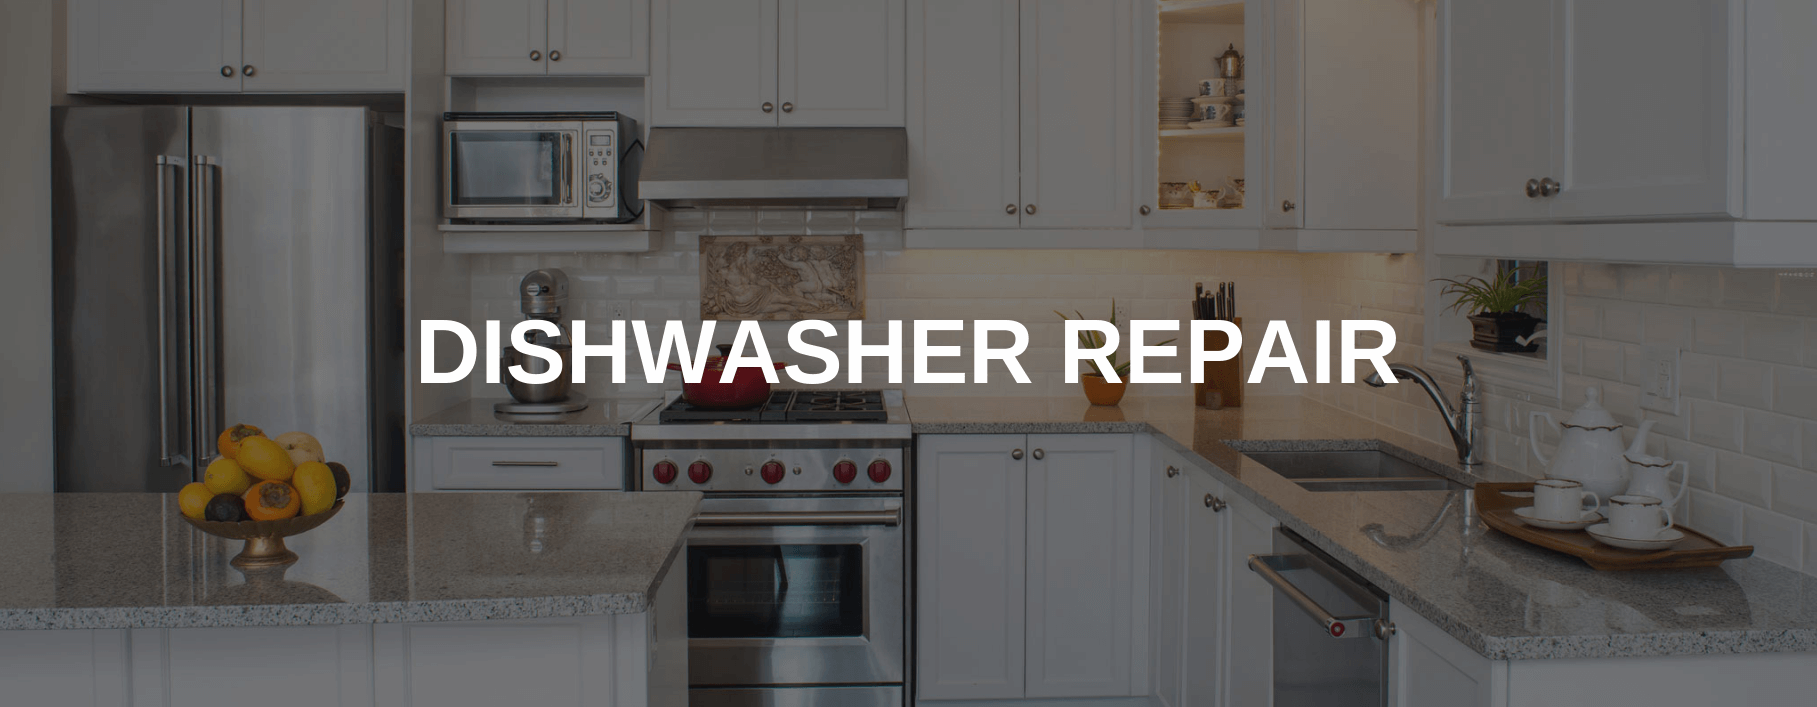 dishwasher repair hialeah